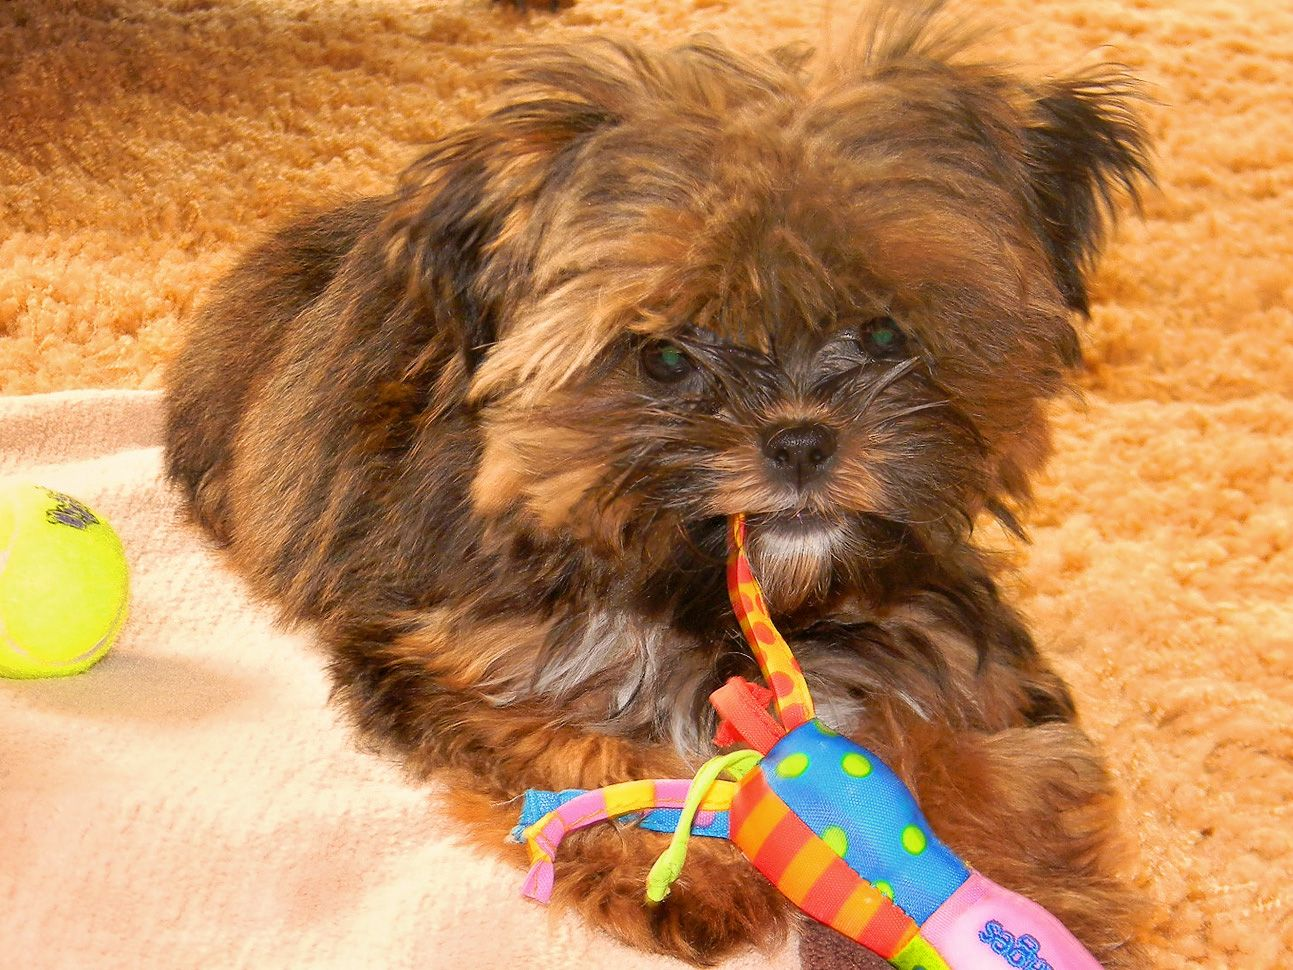 My Sweet Shorkie Kiblet ) Puppies for sale, Small non